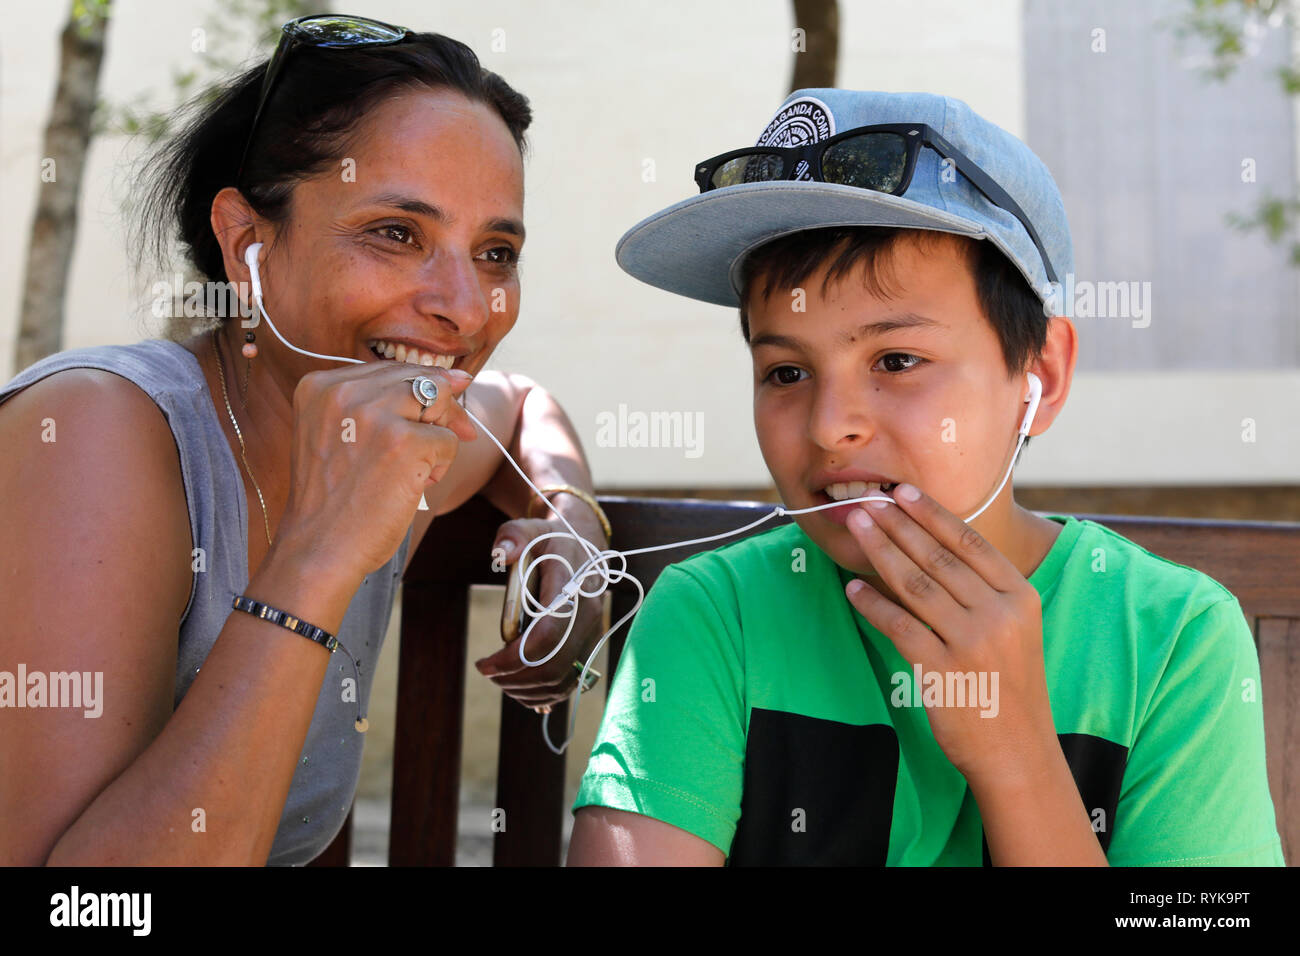 Mother and son having a cell phone conversation and sharing earphones in Sicily (Italy). - Stock Image